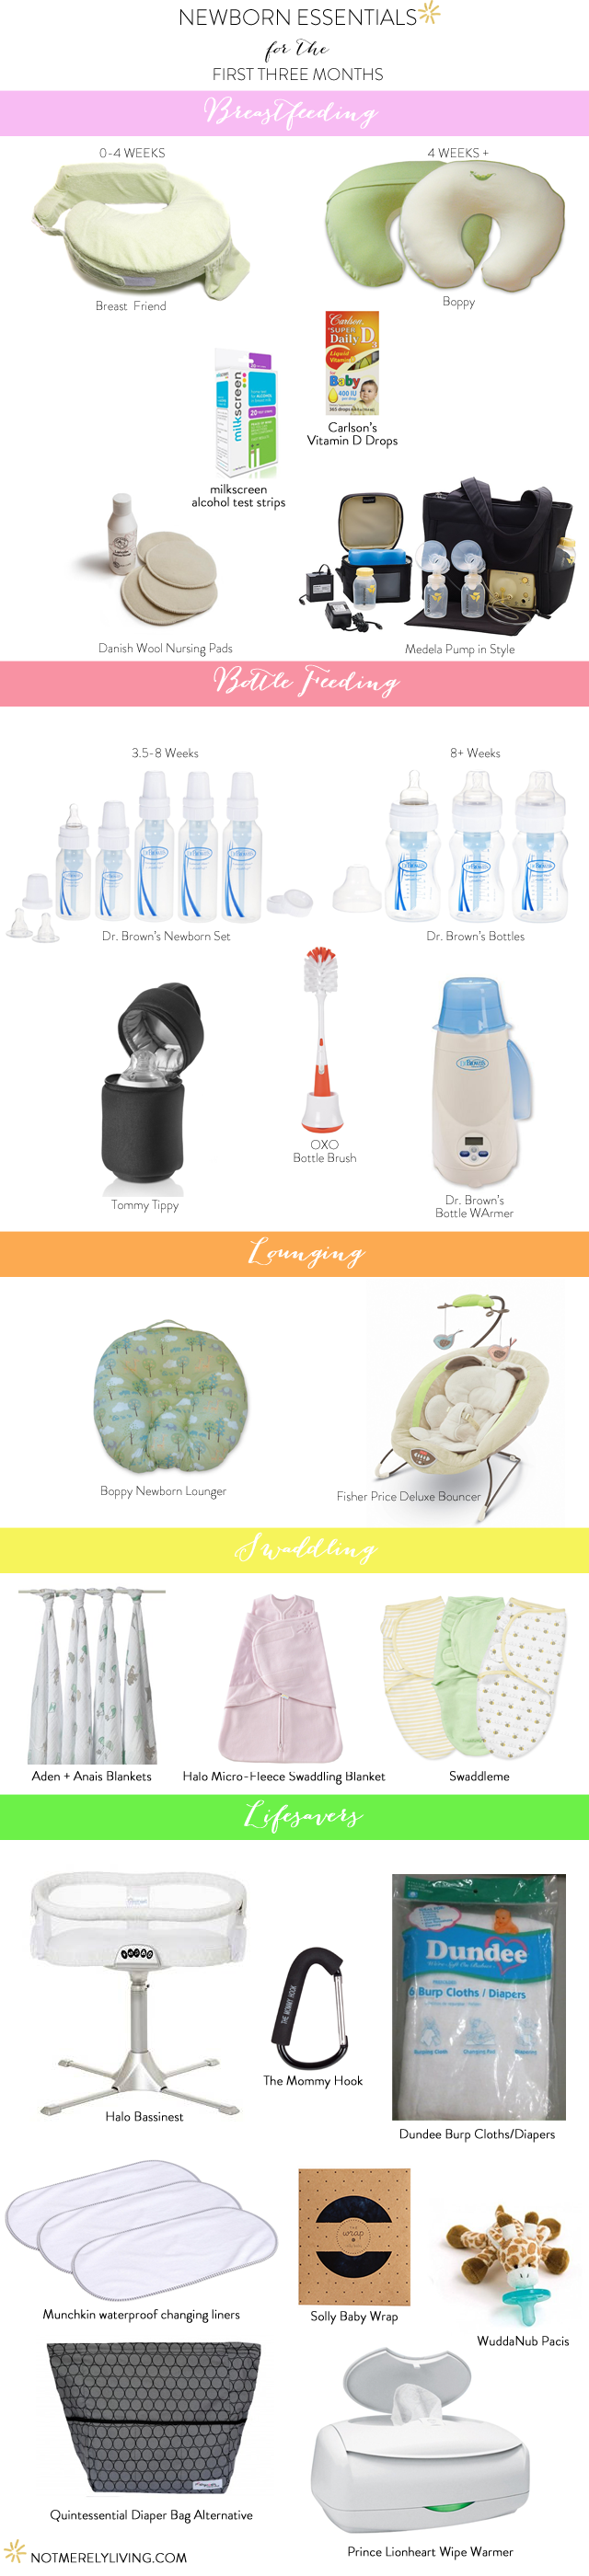 newborn_essentials_must_haves